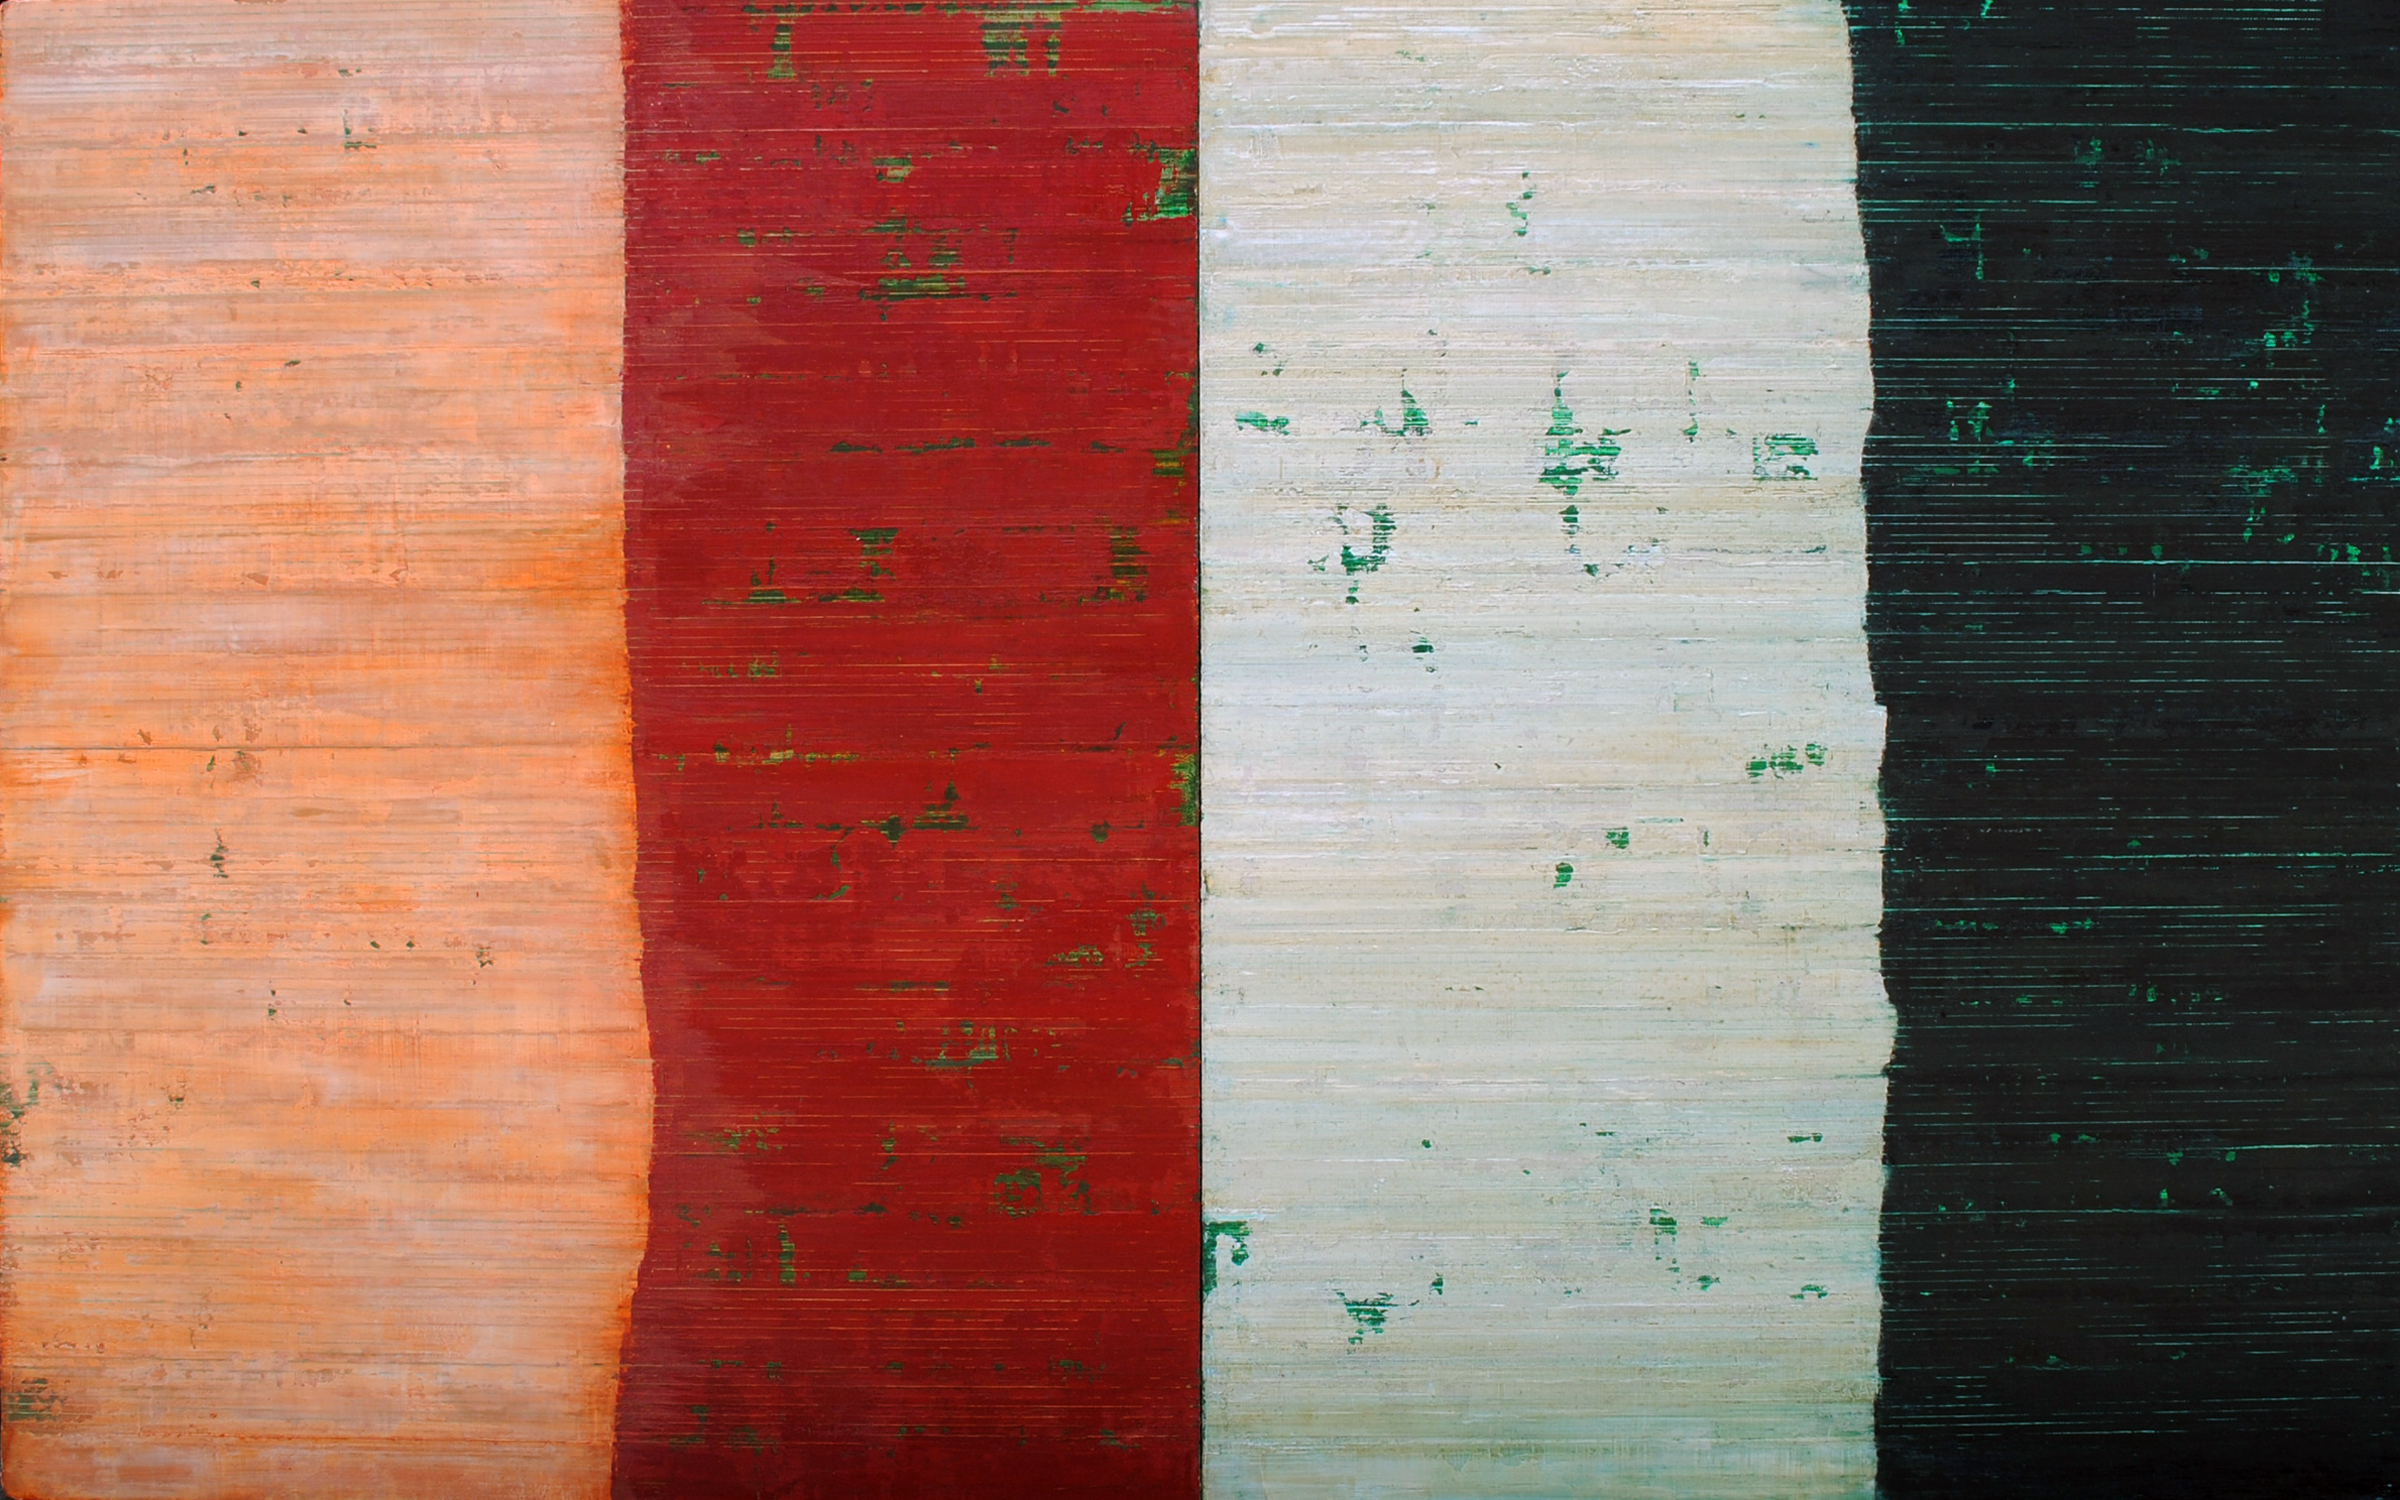 Linea Terminale: 9.11, 2011, Oil on linen over panels, 20 x 36 inches.